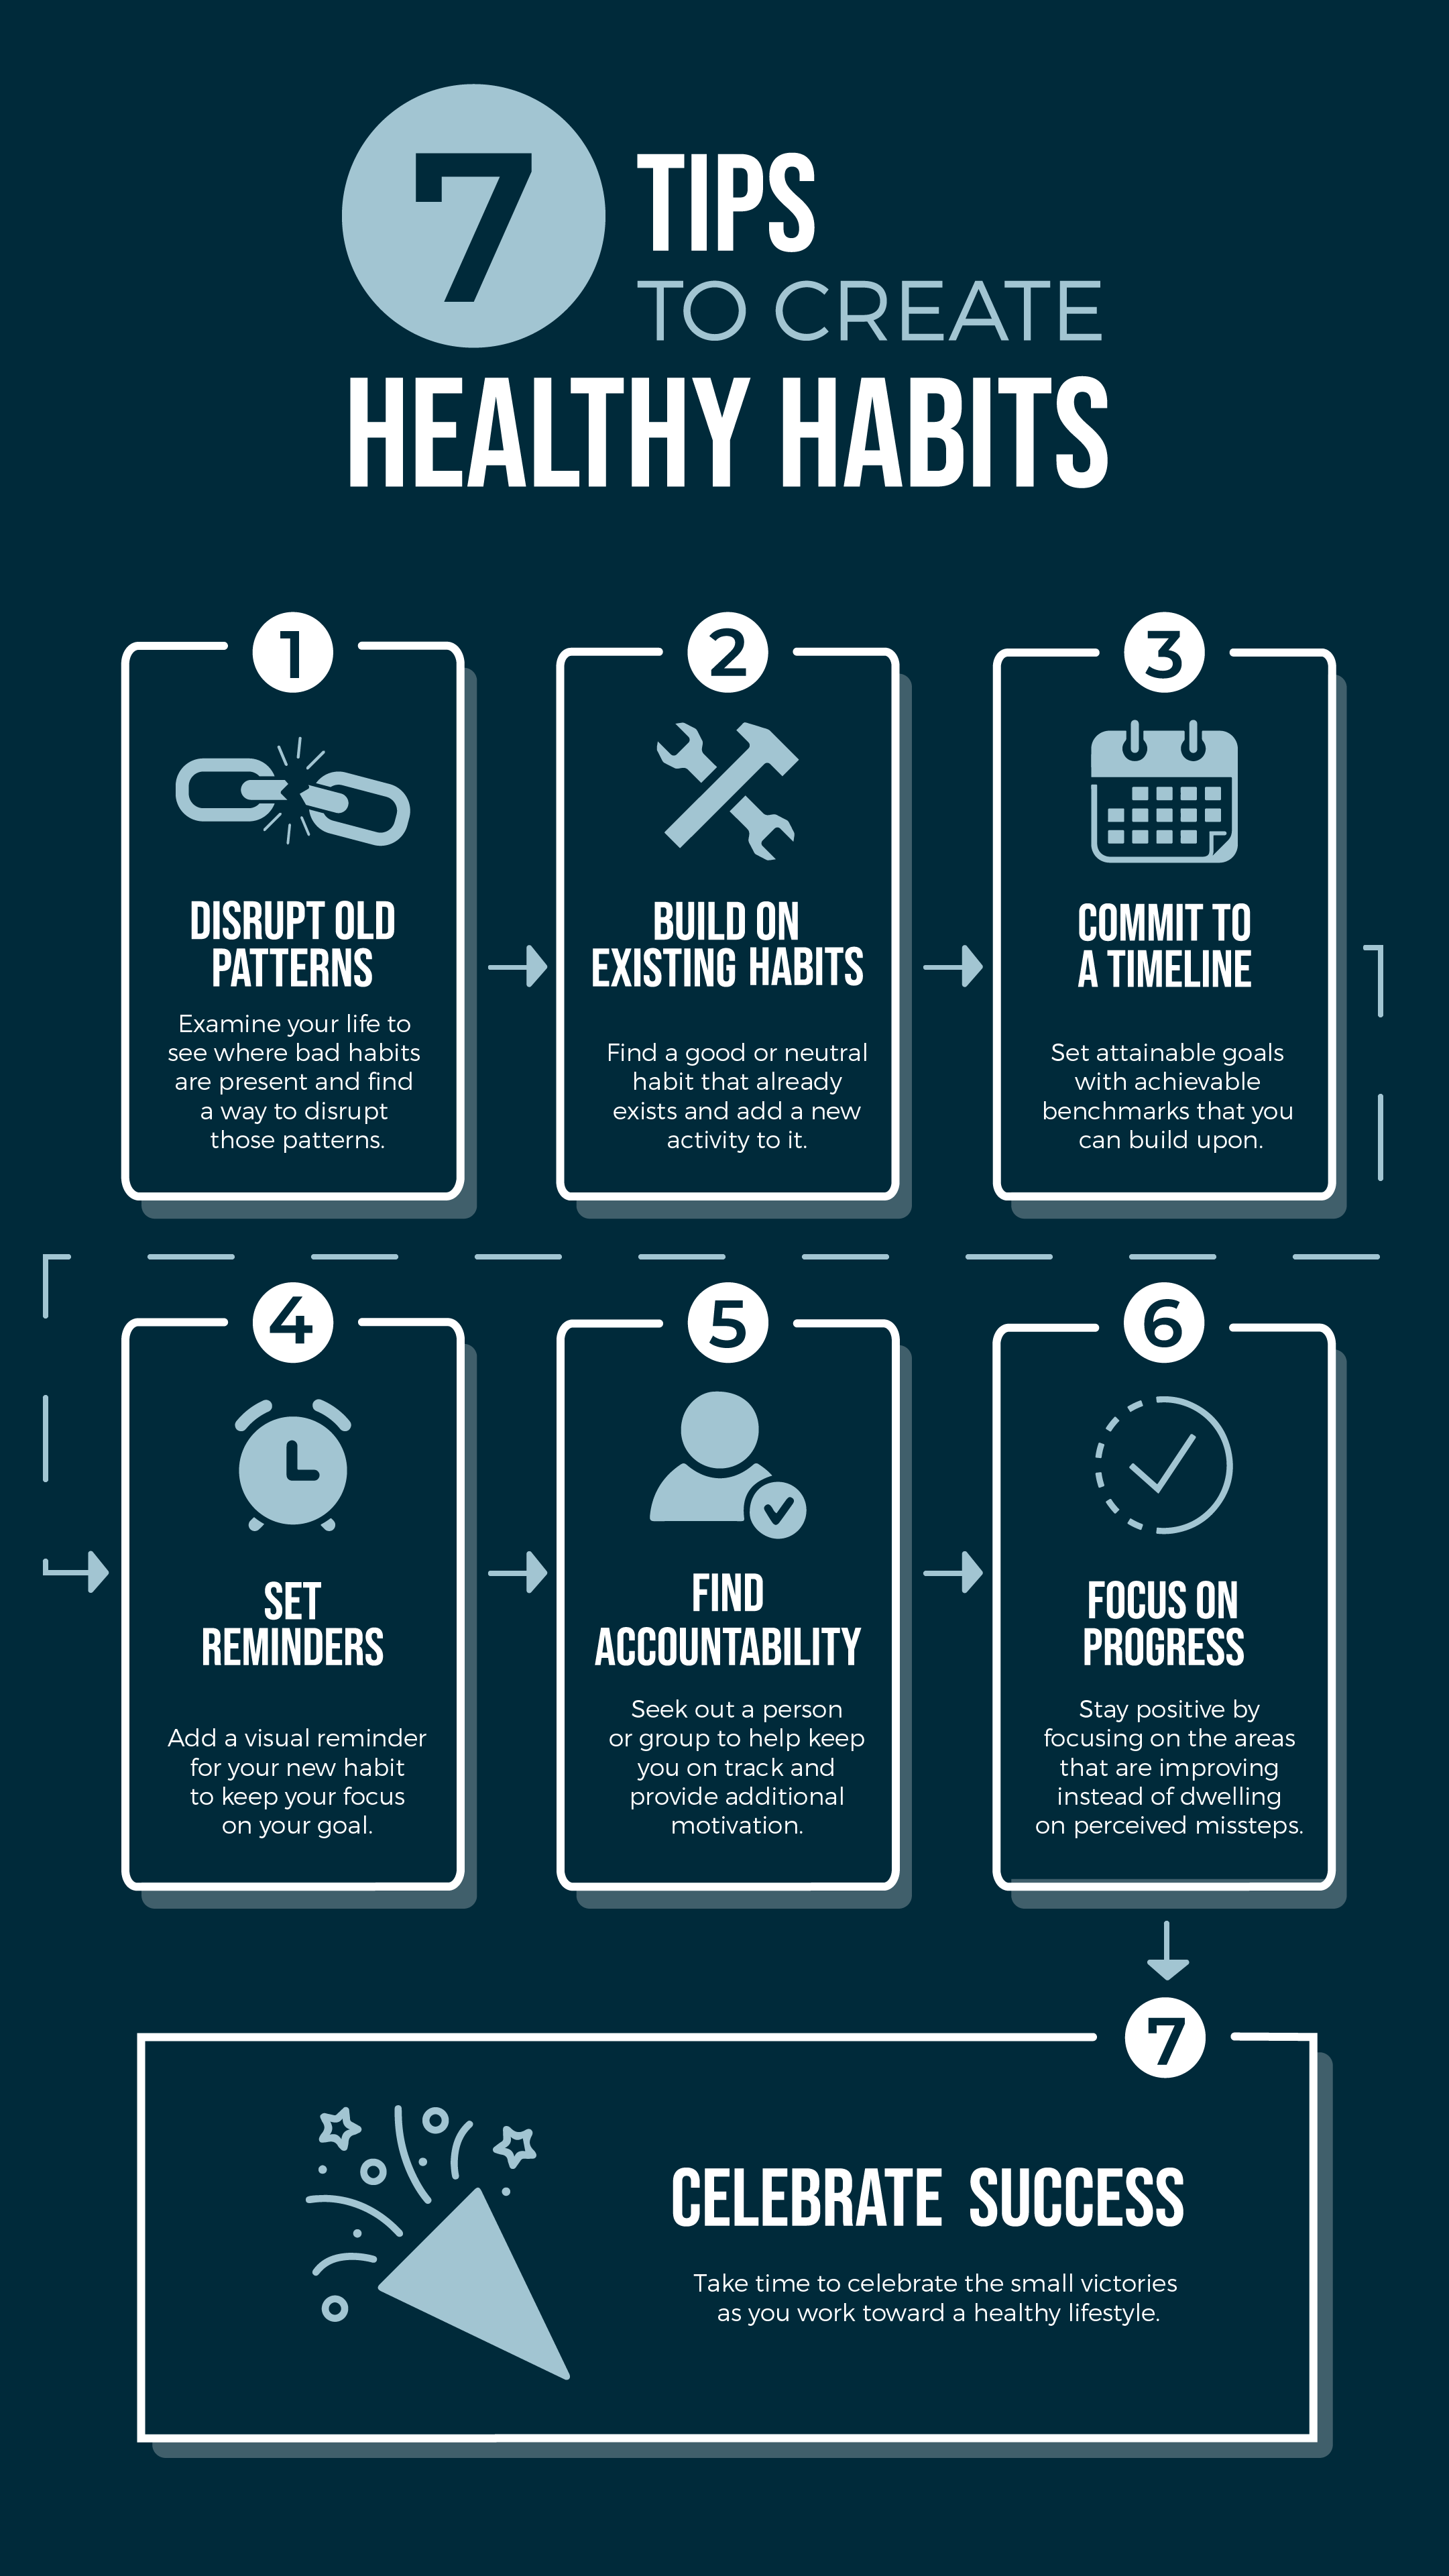 Echelon Blog Infographic for 7 Tips to Create Healthy Habits